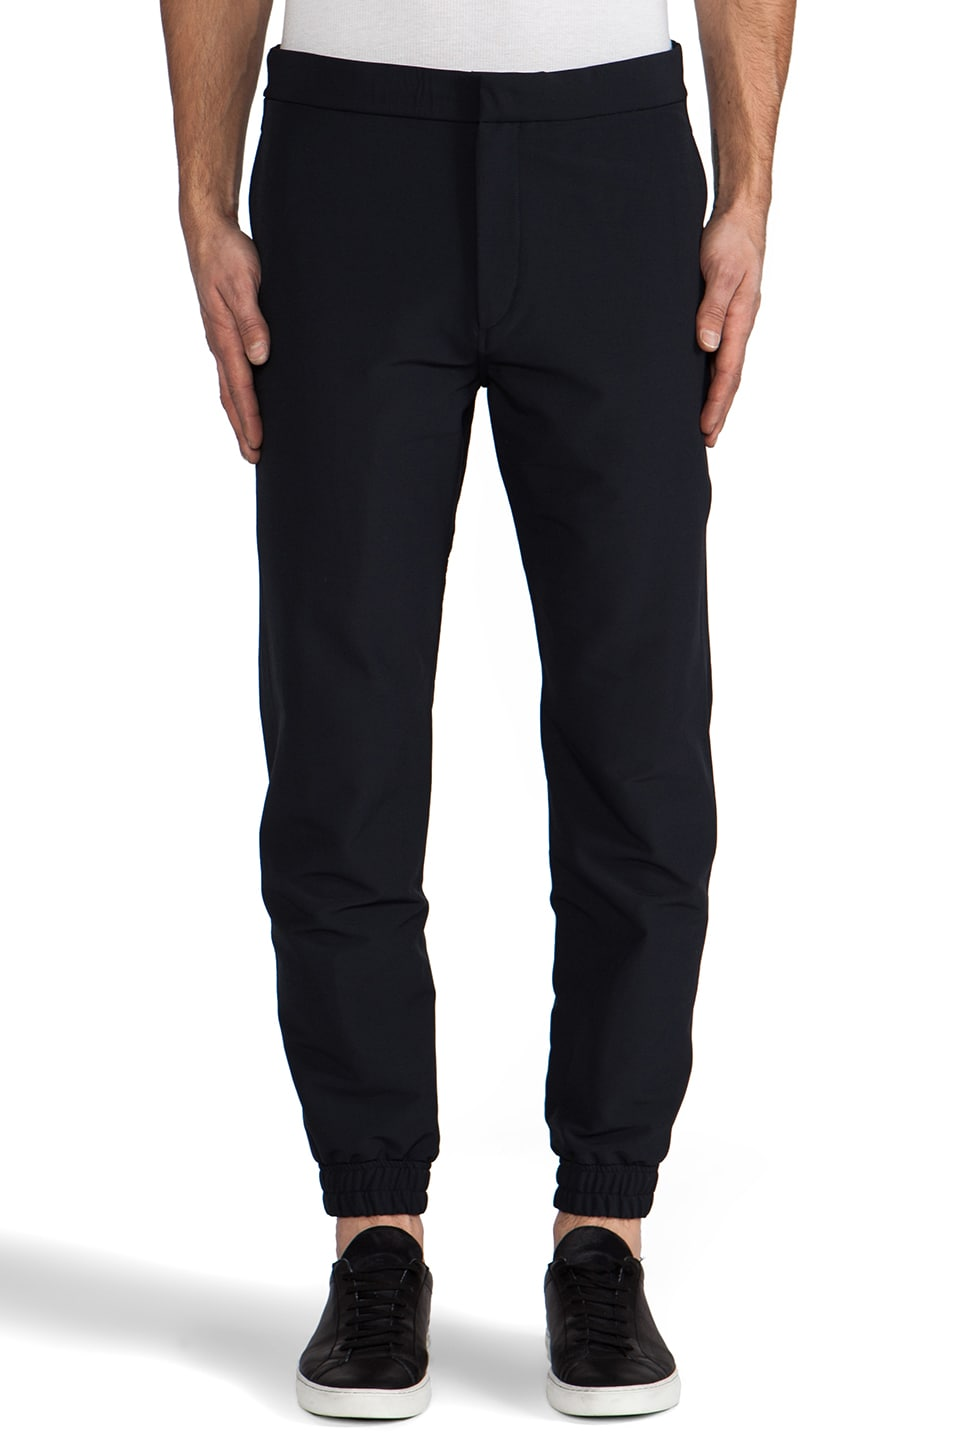 Theory 38 Lytes Trouser in Black